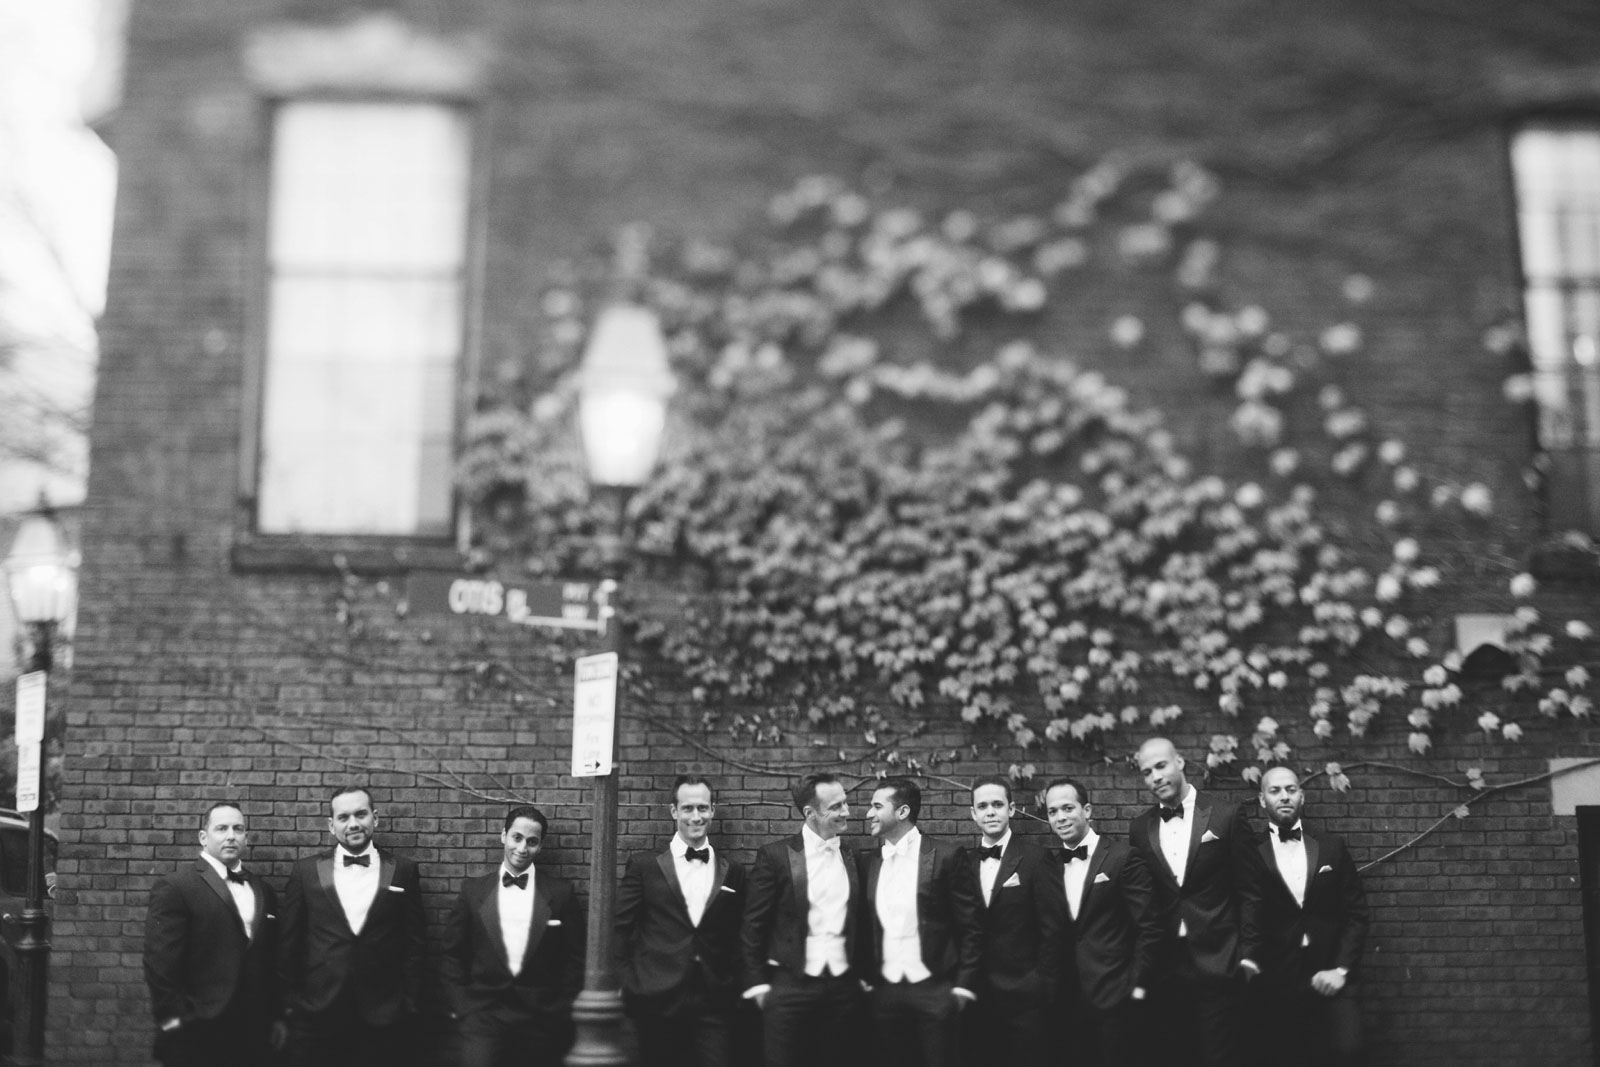 Black and white black-tie groomsmen portrait in front of brick wall with ivy in Boston's back bay